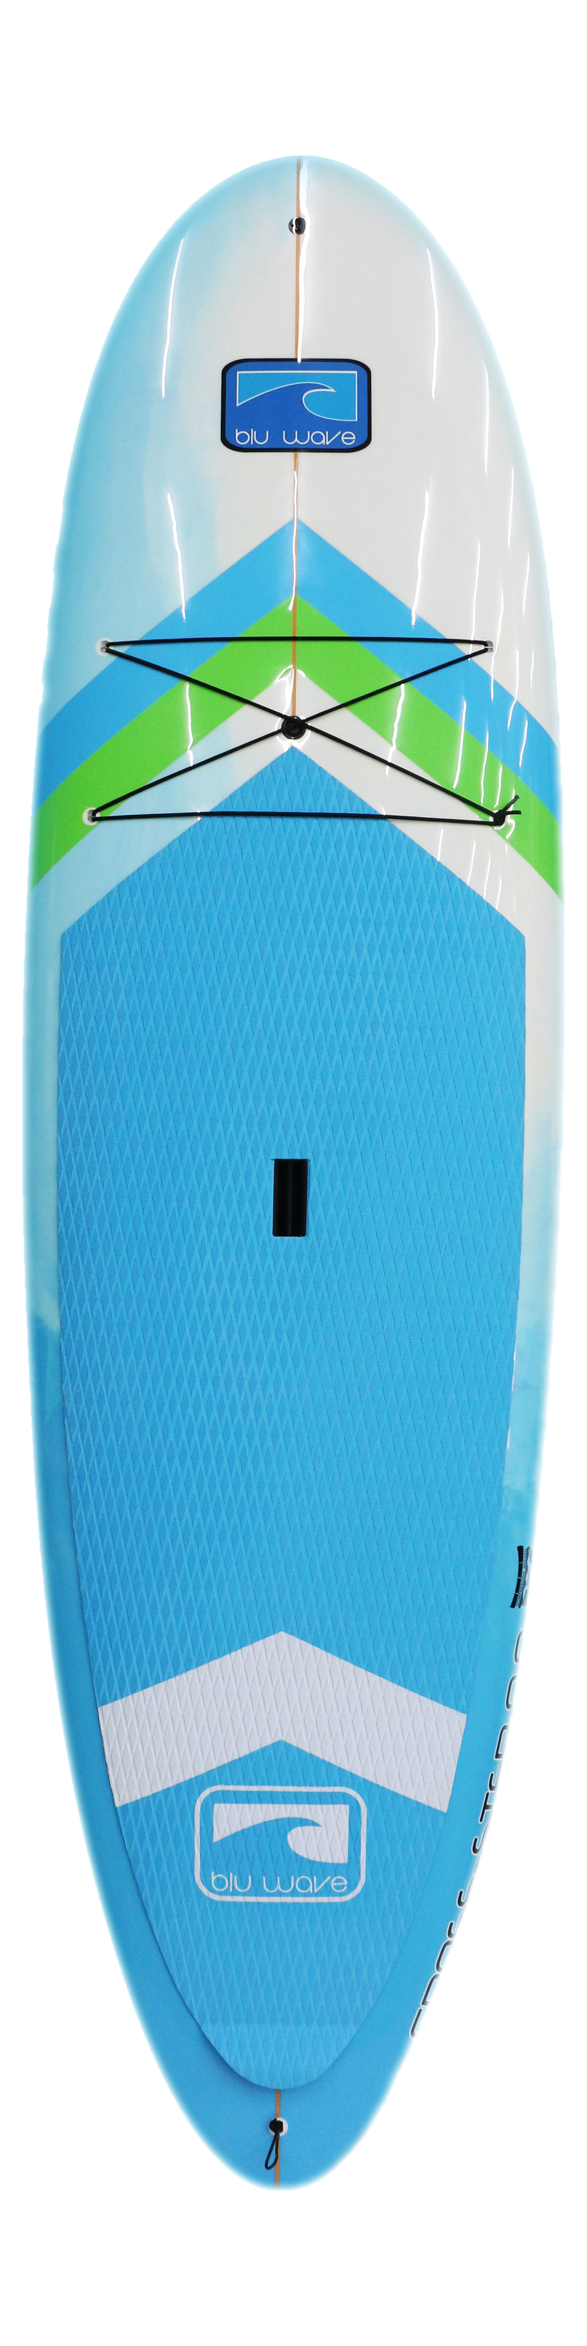 Paddleboards: Cross-step 9.0 by Blu Wave SUP - Image 3712